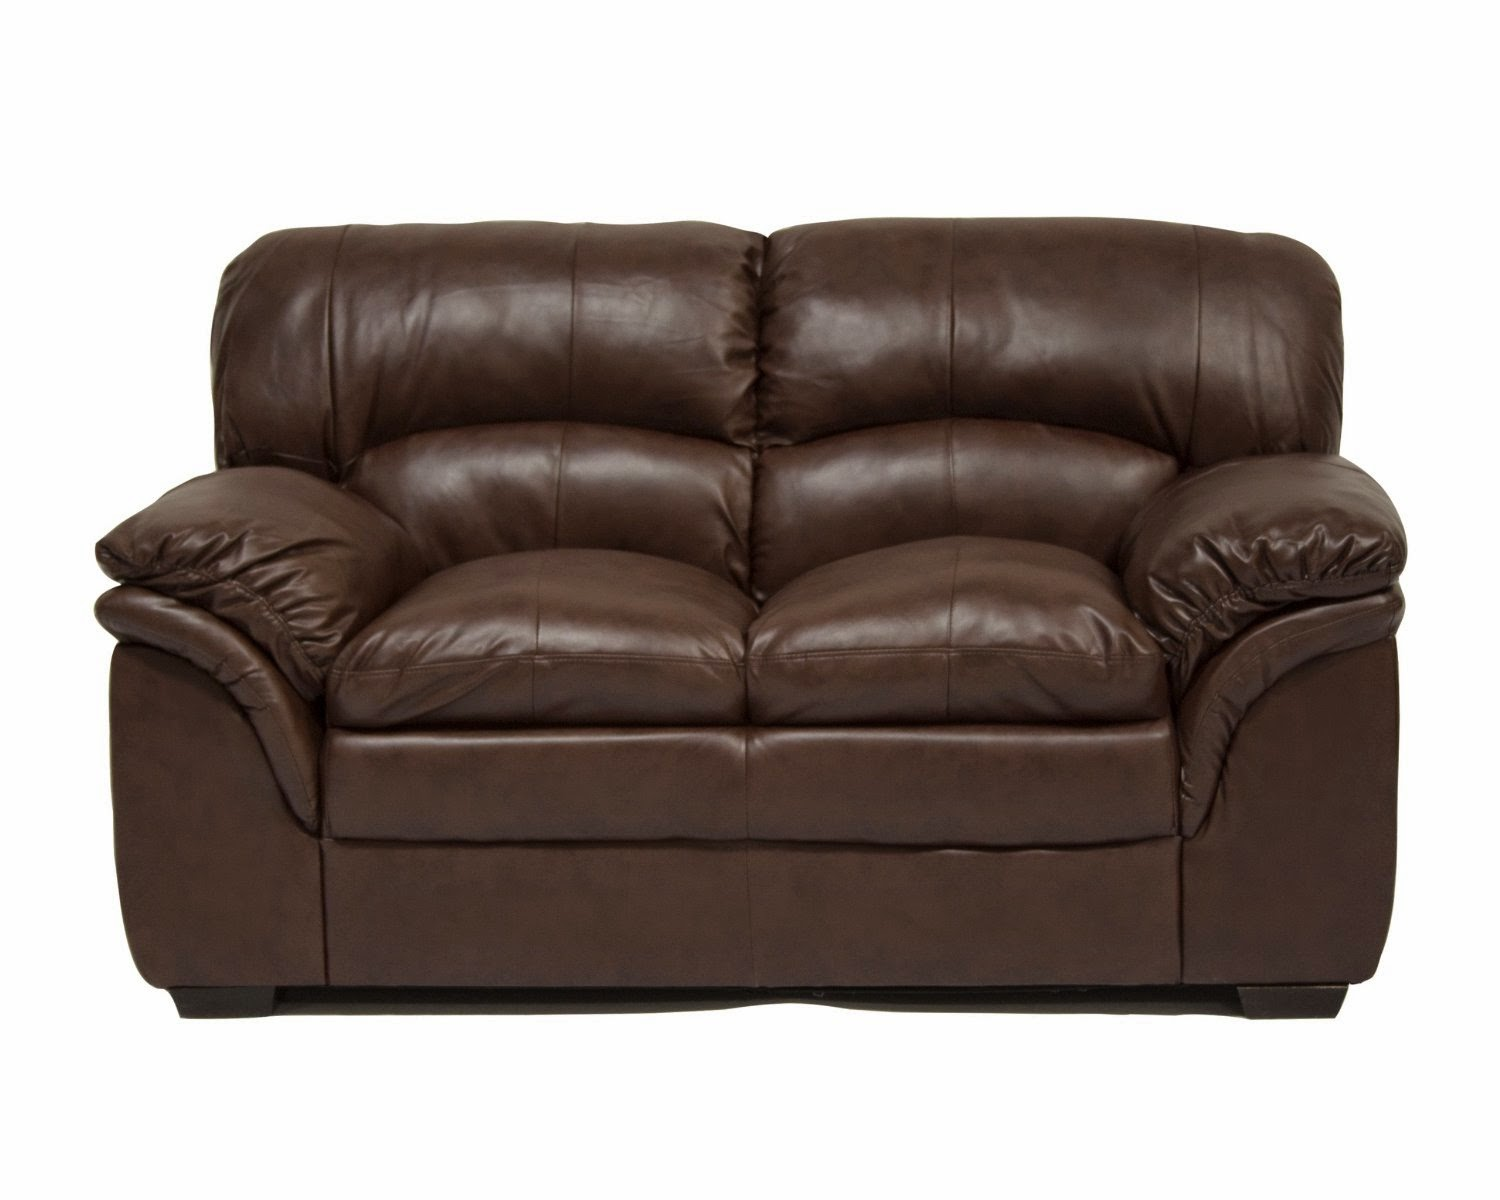 discounted leather sofas genuine sofa sale cheap reclining 2 seater recliner